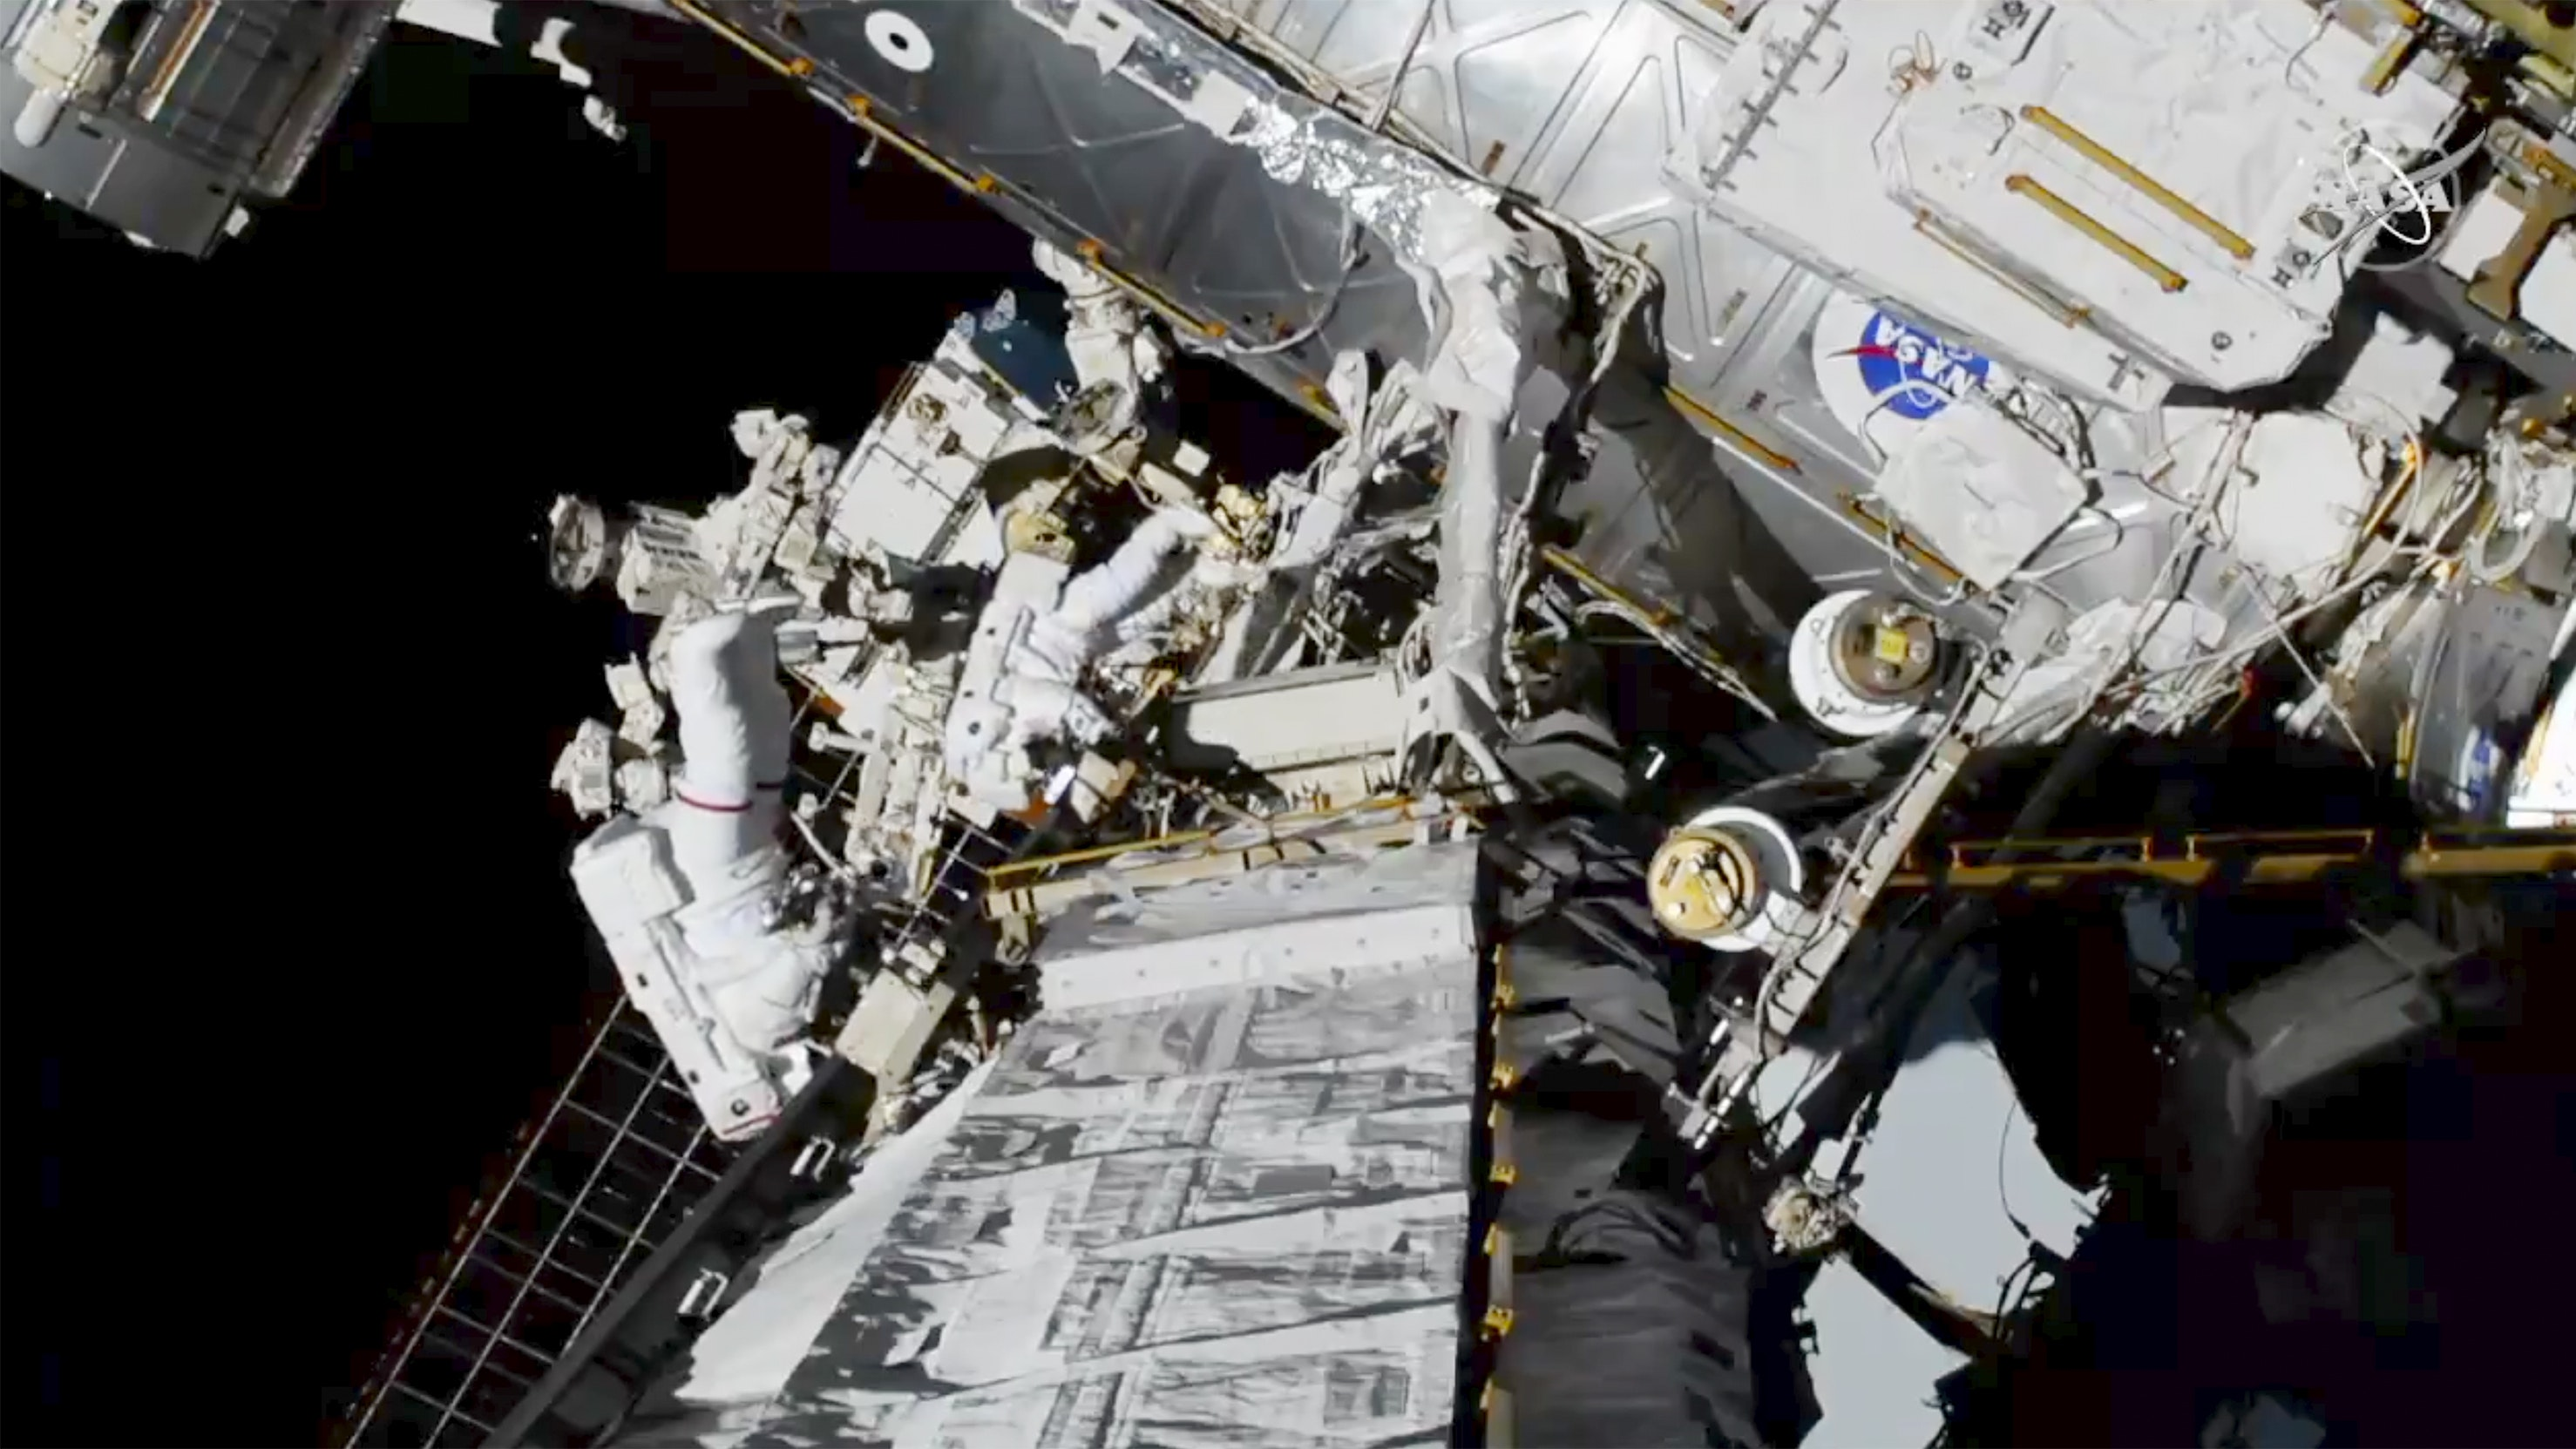 U.S. astronauts Jessica Meir and Christina Koch spacewalking